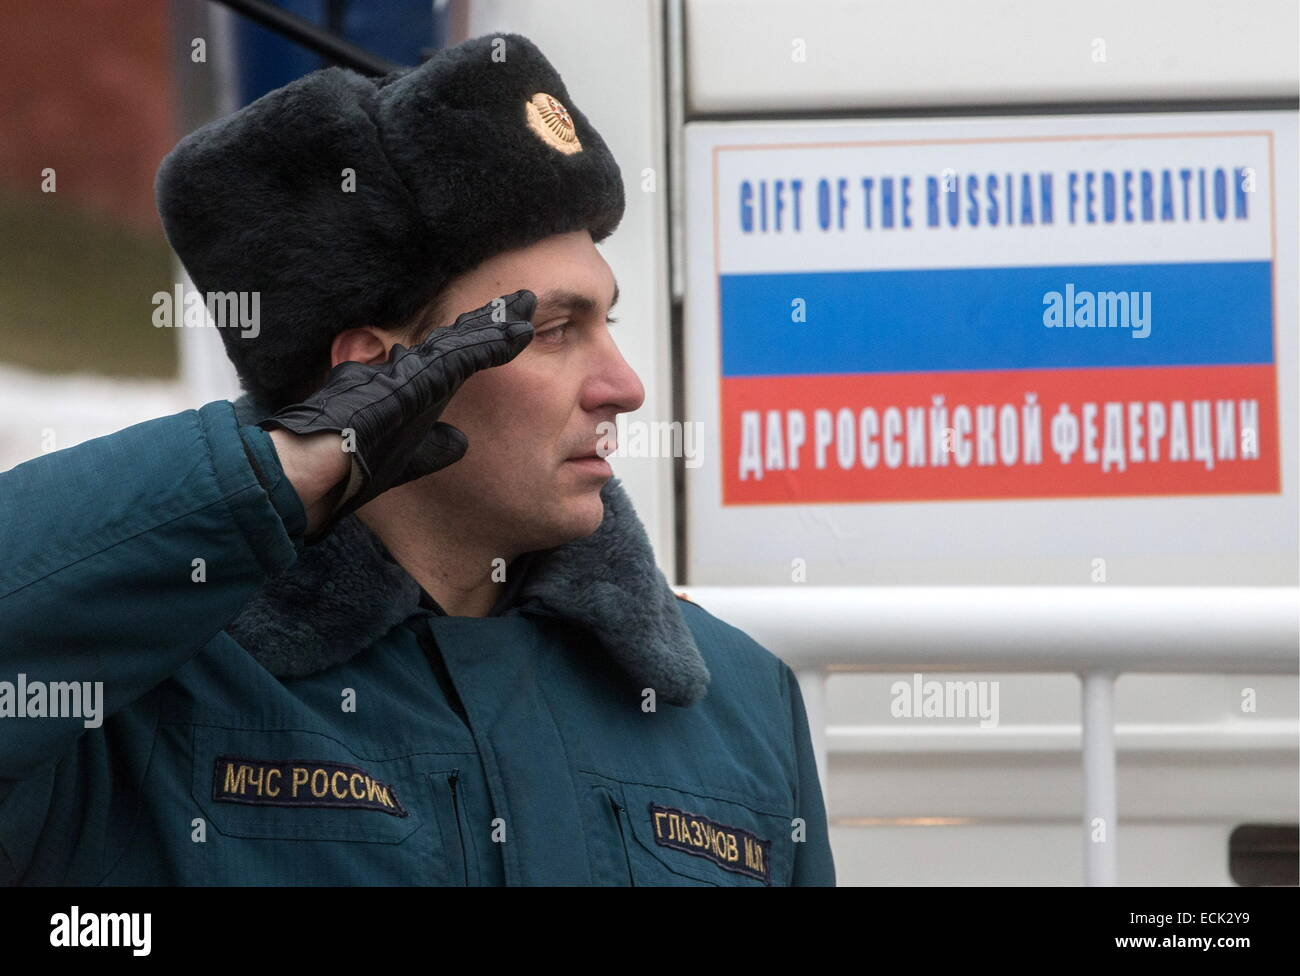 Moscow, Russia. 16th Dec, 2014. Russia's emergency situations ministry officer gives a salute during a KAMAZ trucks Stock Photo